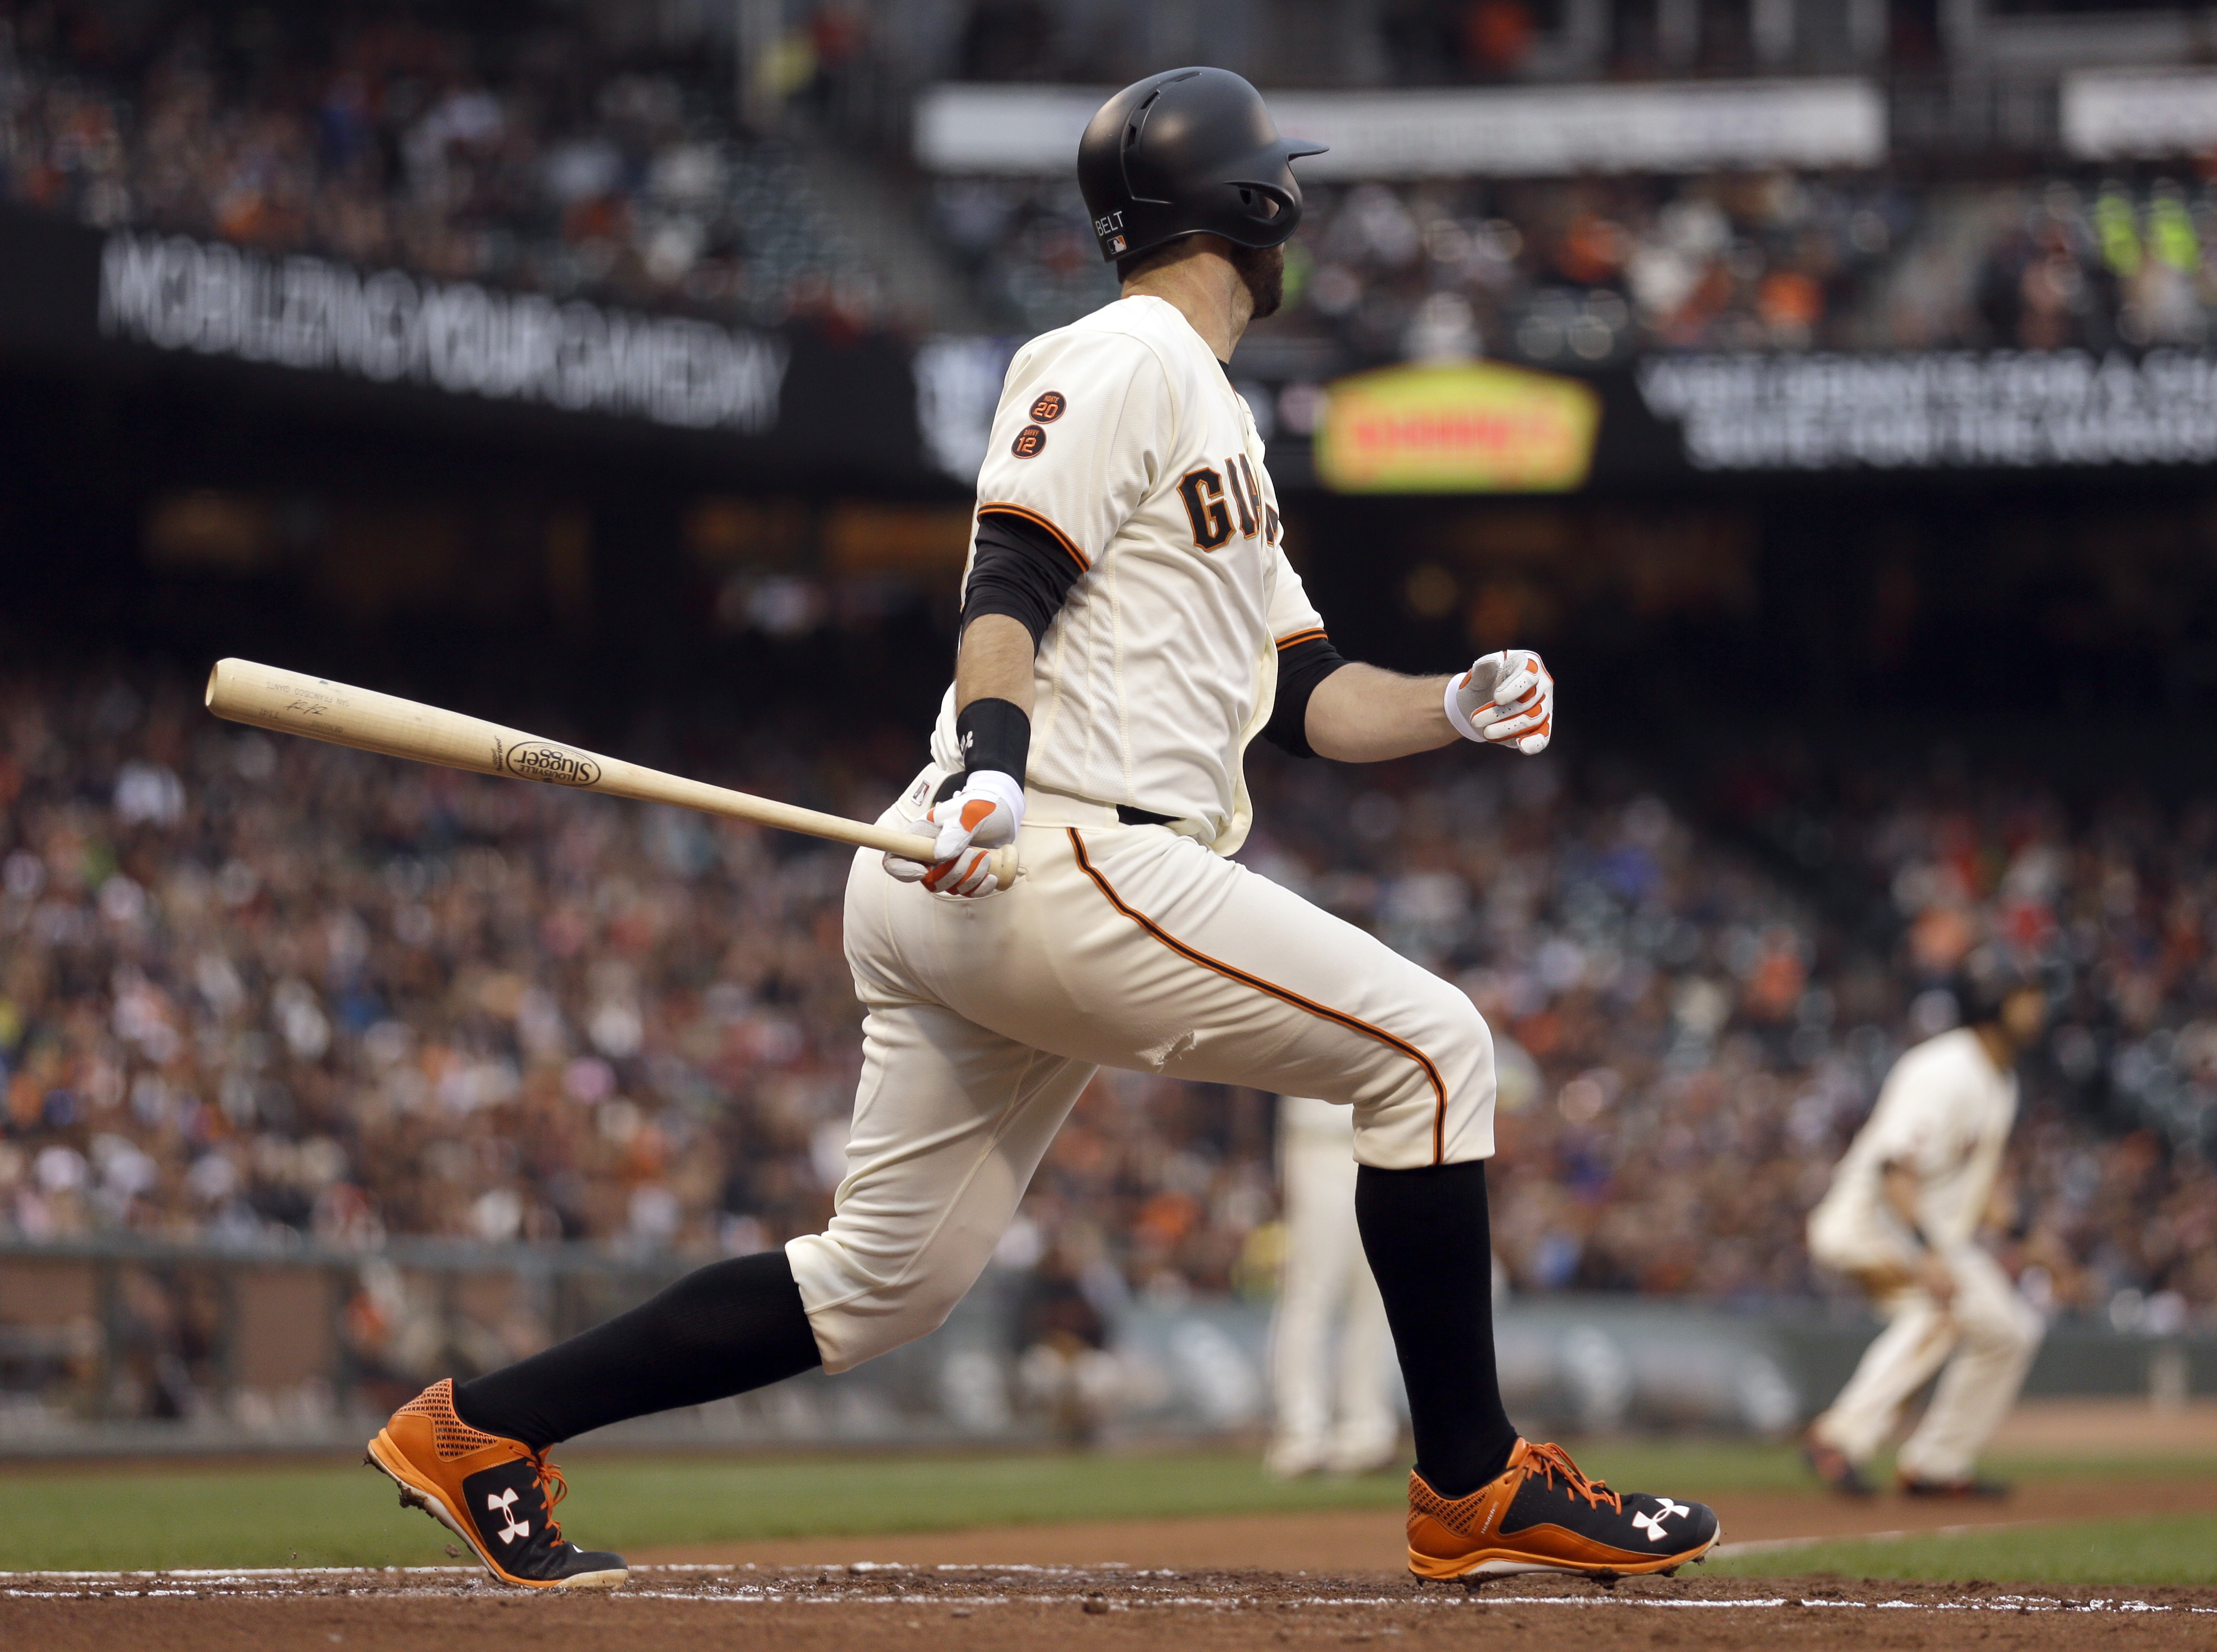 San Francisco Giants' Brandon Belt swings for an RBI single off Colorado Rockies' Tyler Chatwood in the first inning of a baseball game Tuesday, July 5, 2016, in San Francisco. (AP Photo/Ben Margot)